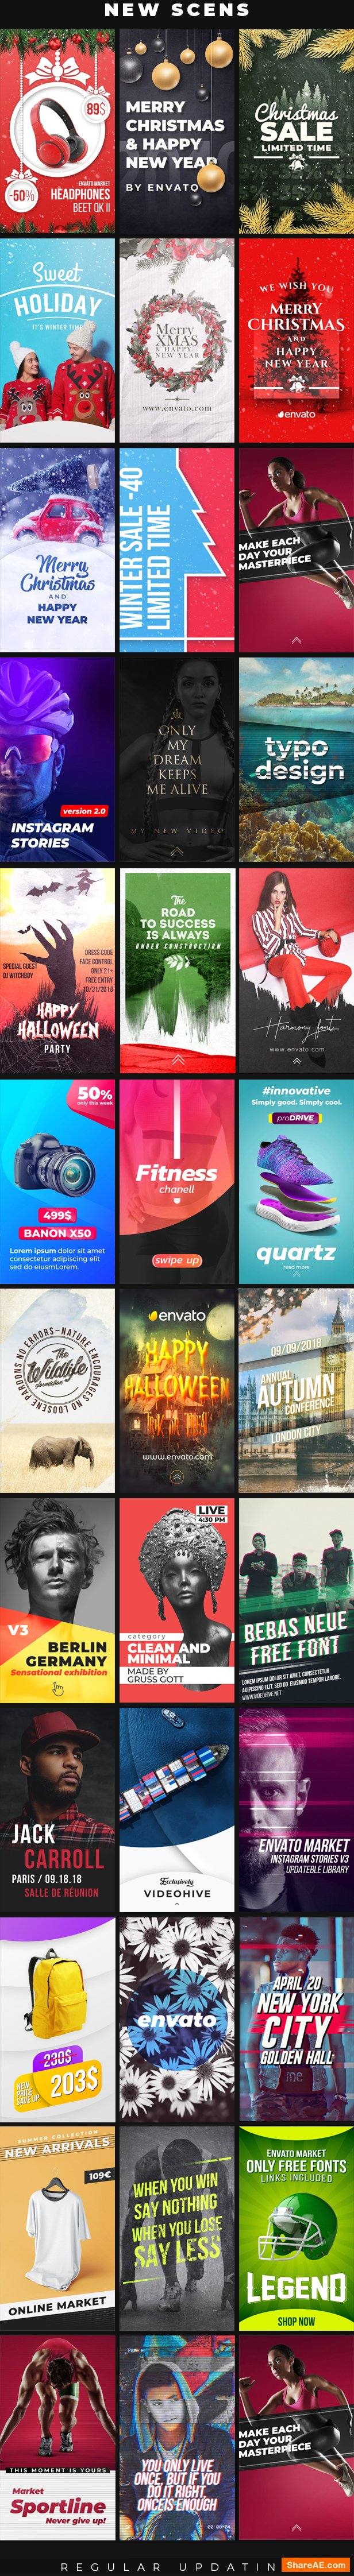 Videohive Instagram Stories v5 21895564